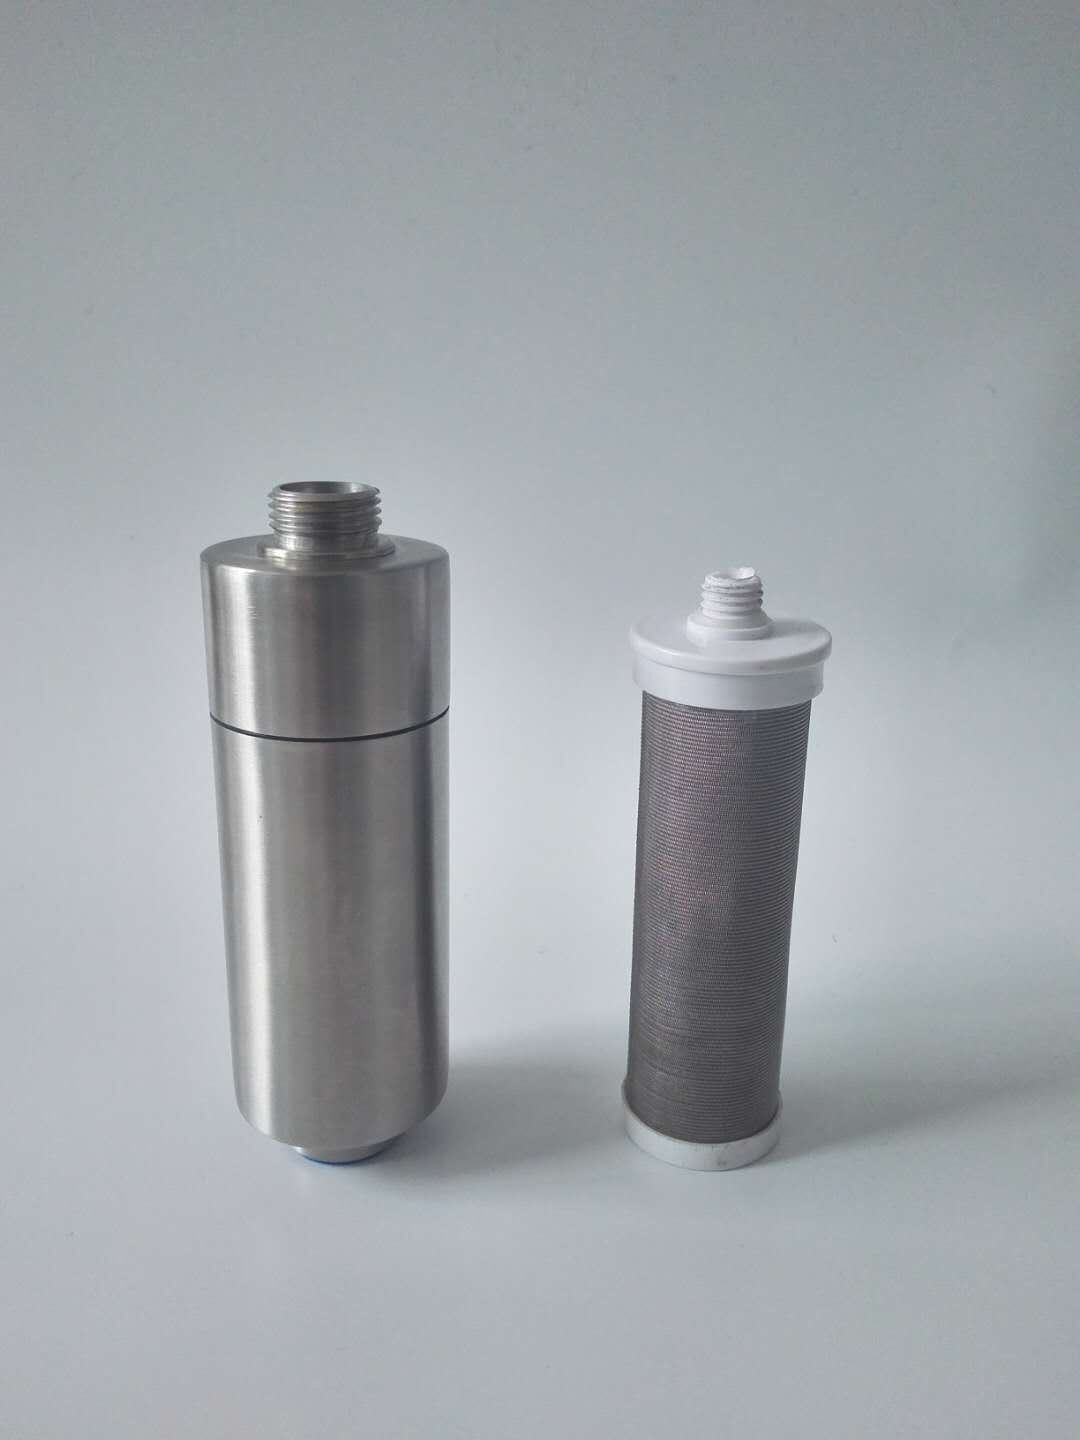 Water Filter For Shower Hot Item Unique All 304 Stainless Steel Water Filter Shower Filter